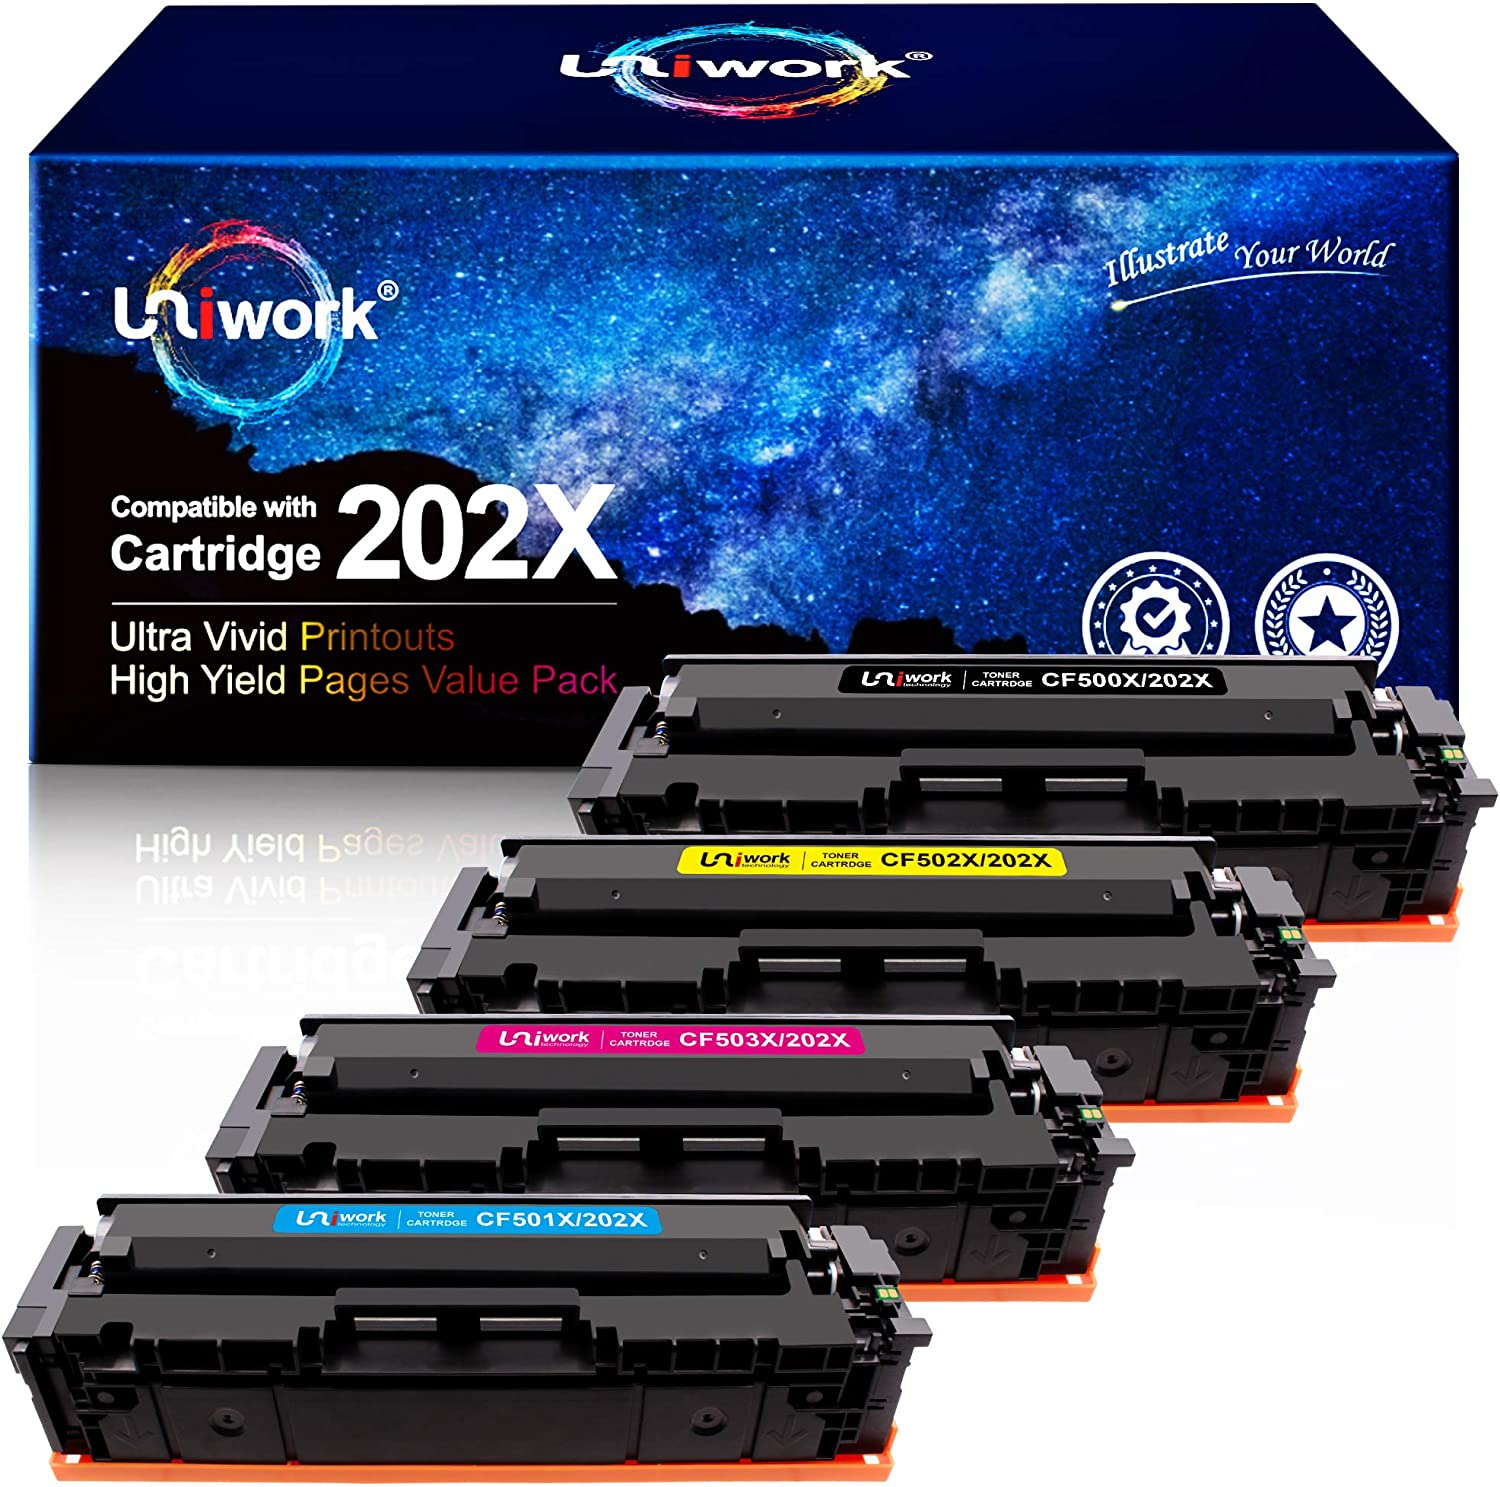 Uniwork Compatible Toner Cartridge Replacement for HP 202X 202A CF500X CF500A use with Laserjet Pro MFP M281fdw M281cdw M254dw M281 M281dw M280nw Toner Printer Tray (Black, Cyan, Magenta, Yellow)